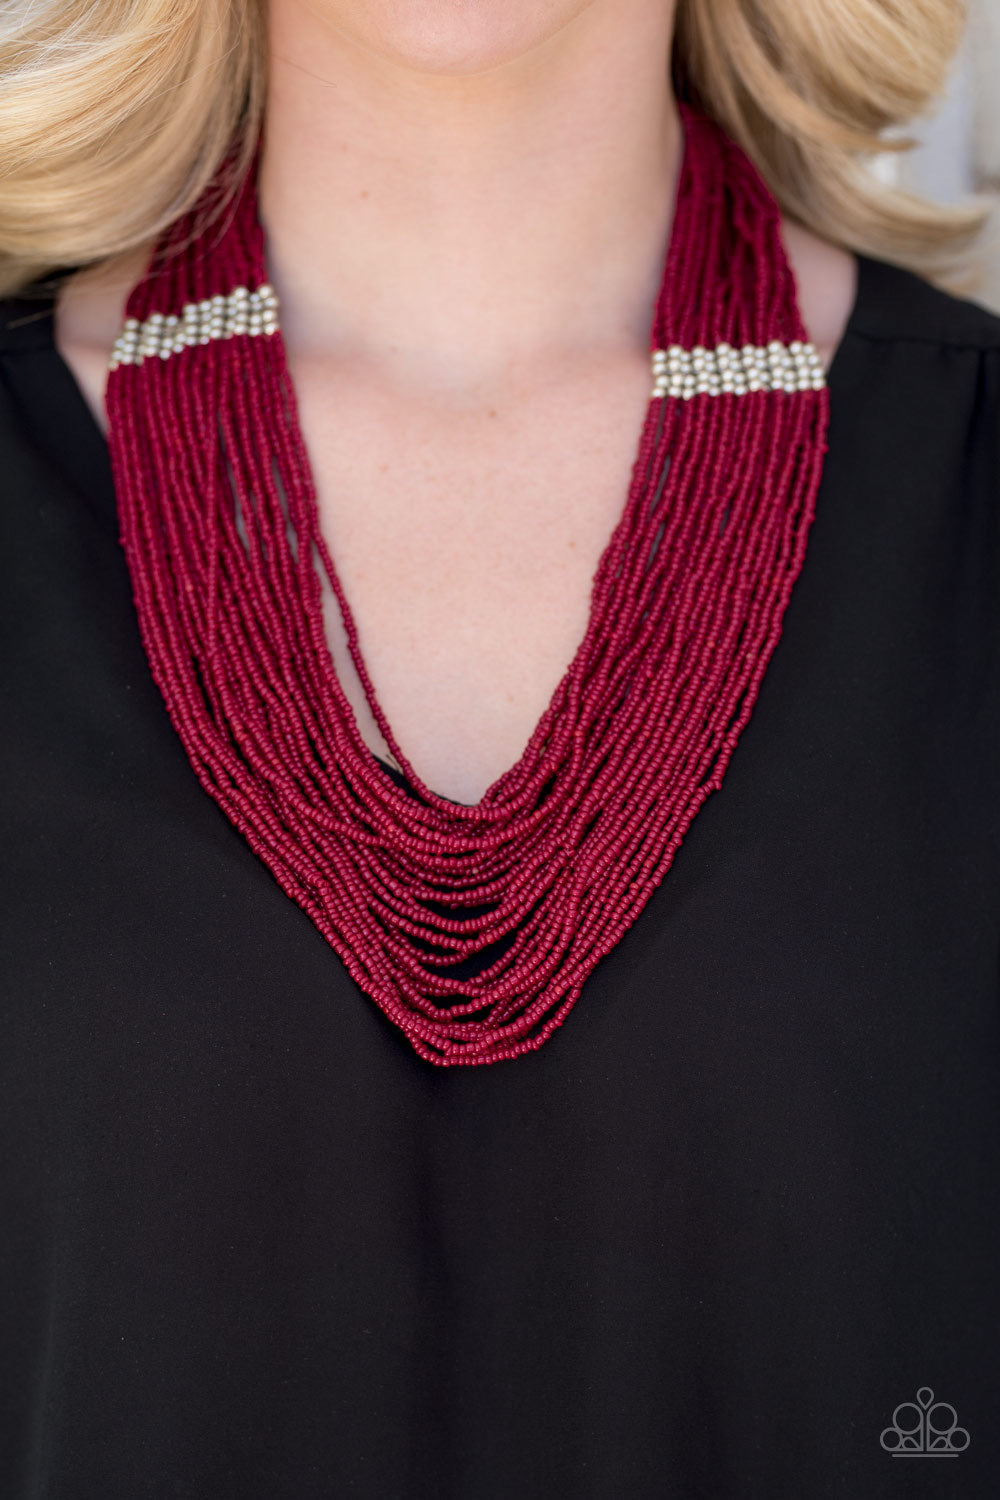 We Got The Bead - Red Seed Bead Necklace - Paparazzi Accessories